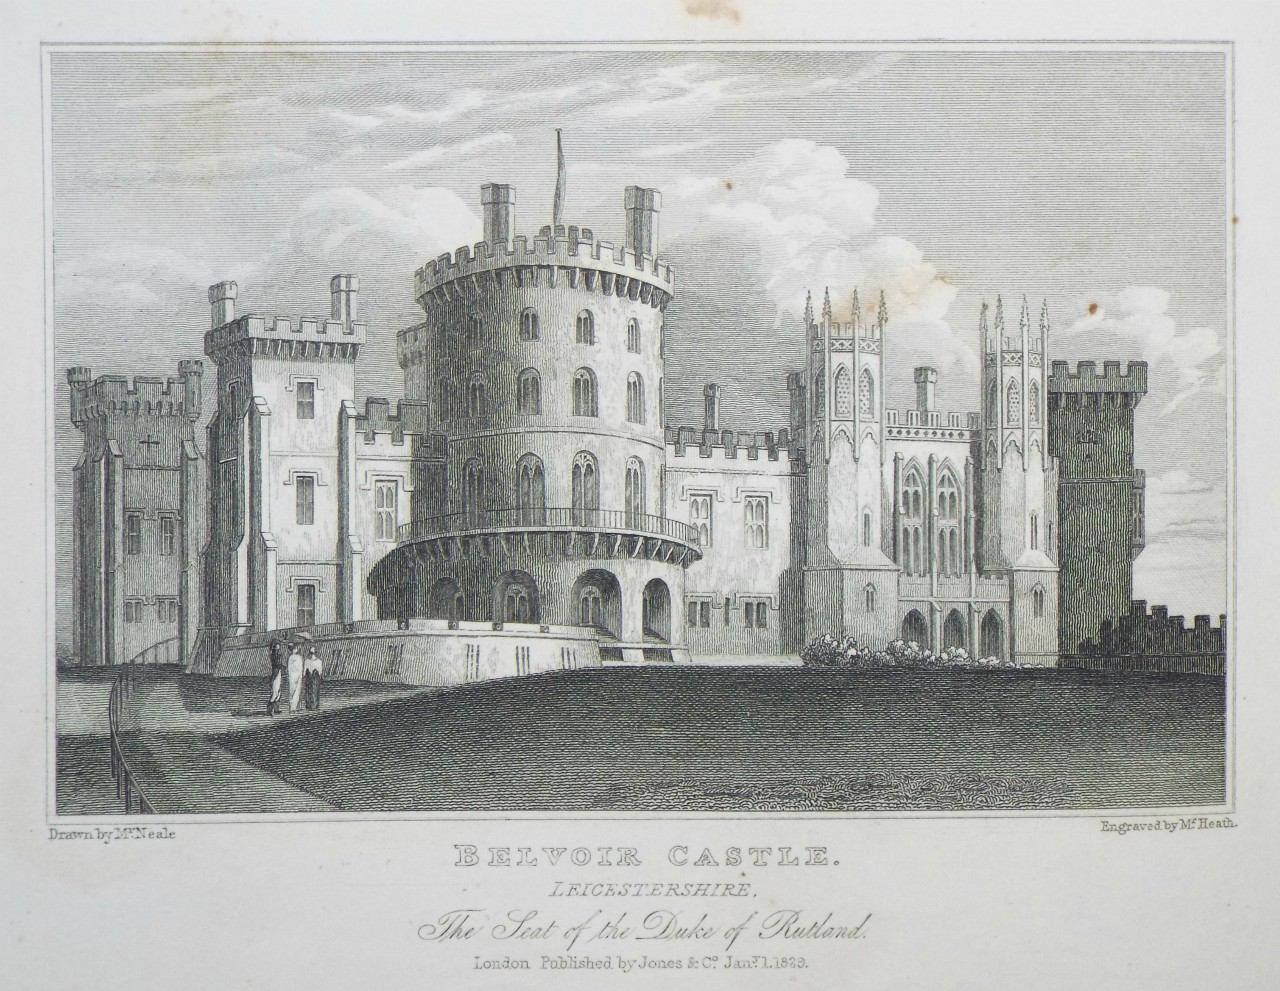 Print - Belvoir Castle, Leicestershire. The Seat of the Duke of Rutland. -